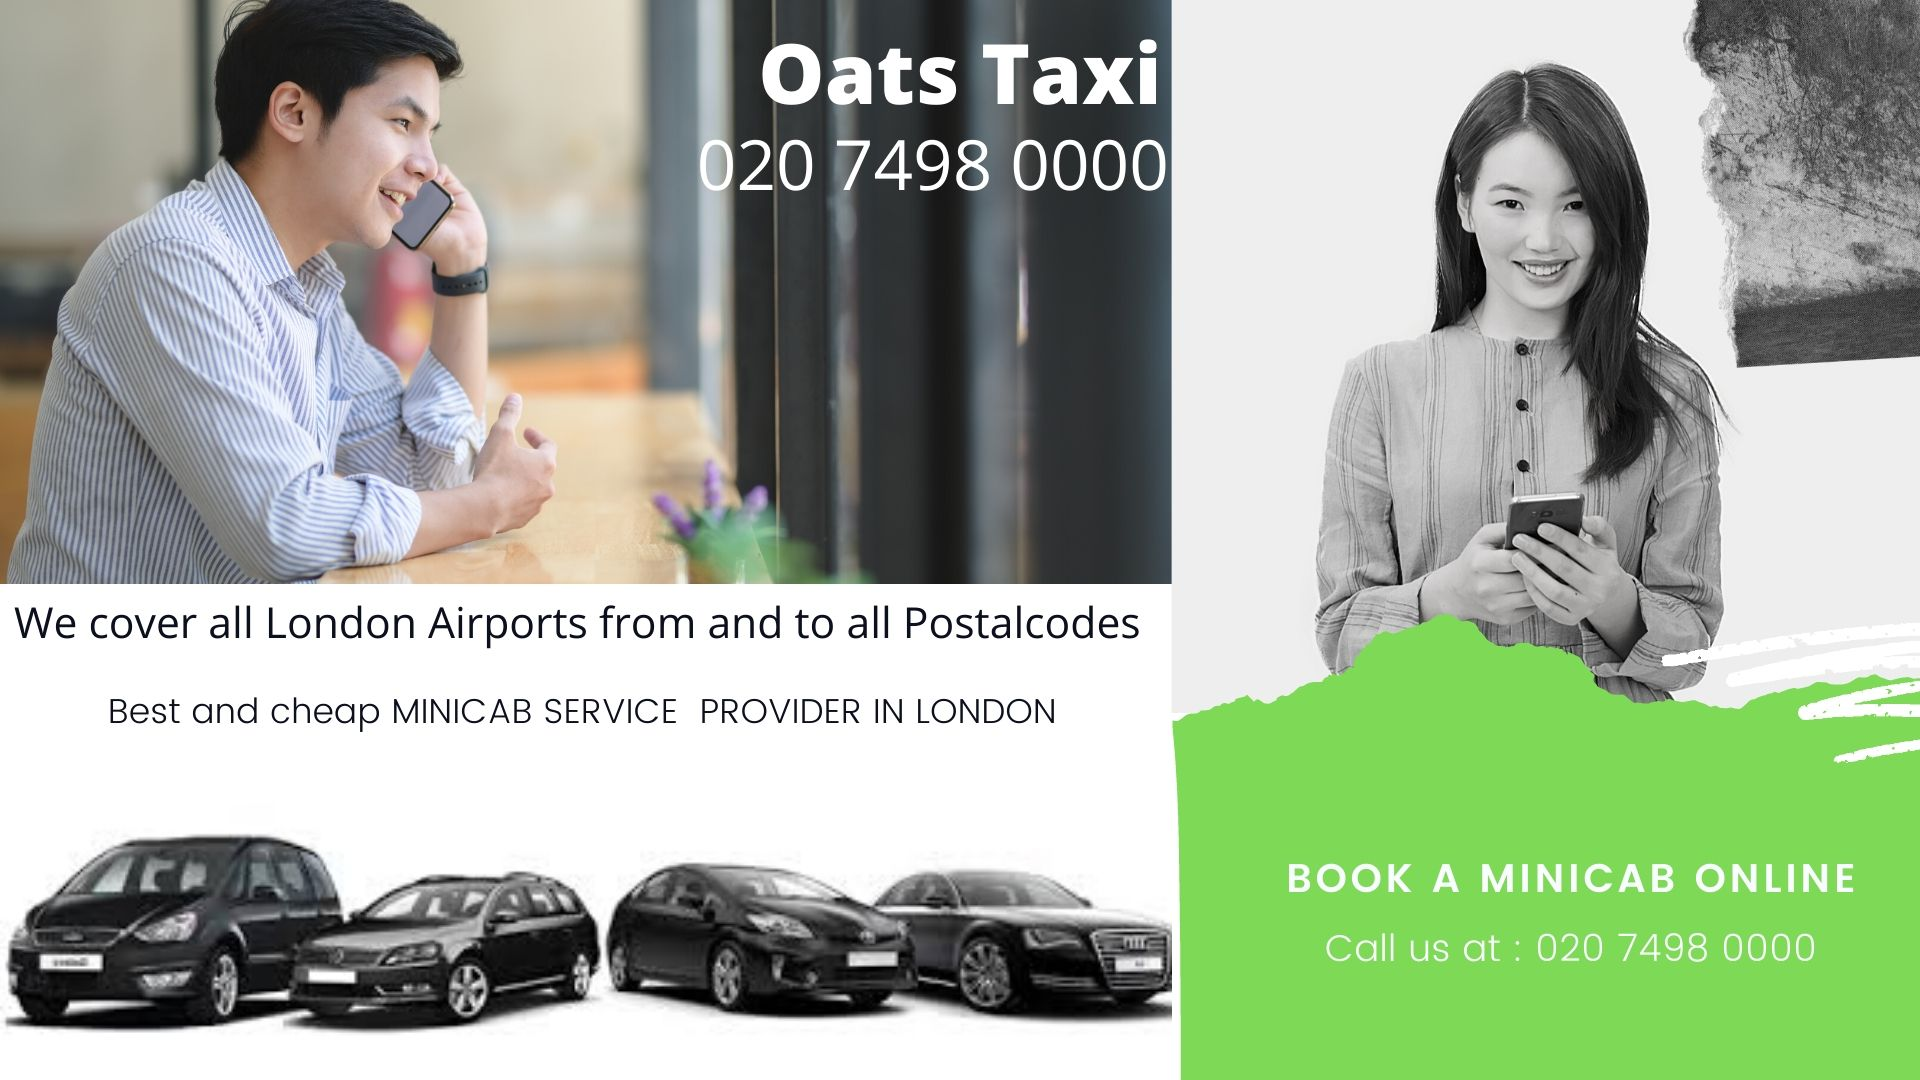 Nearest Minicab Office in South Kensington | Minicab Gatwick Airport | Call now : 02074980000